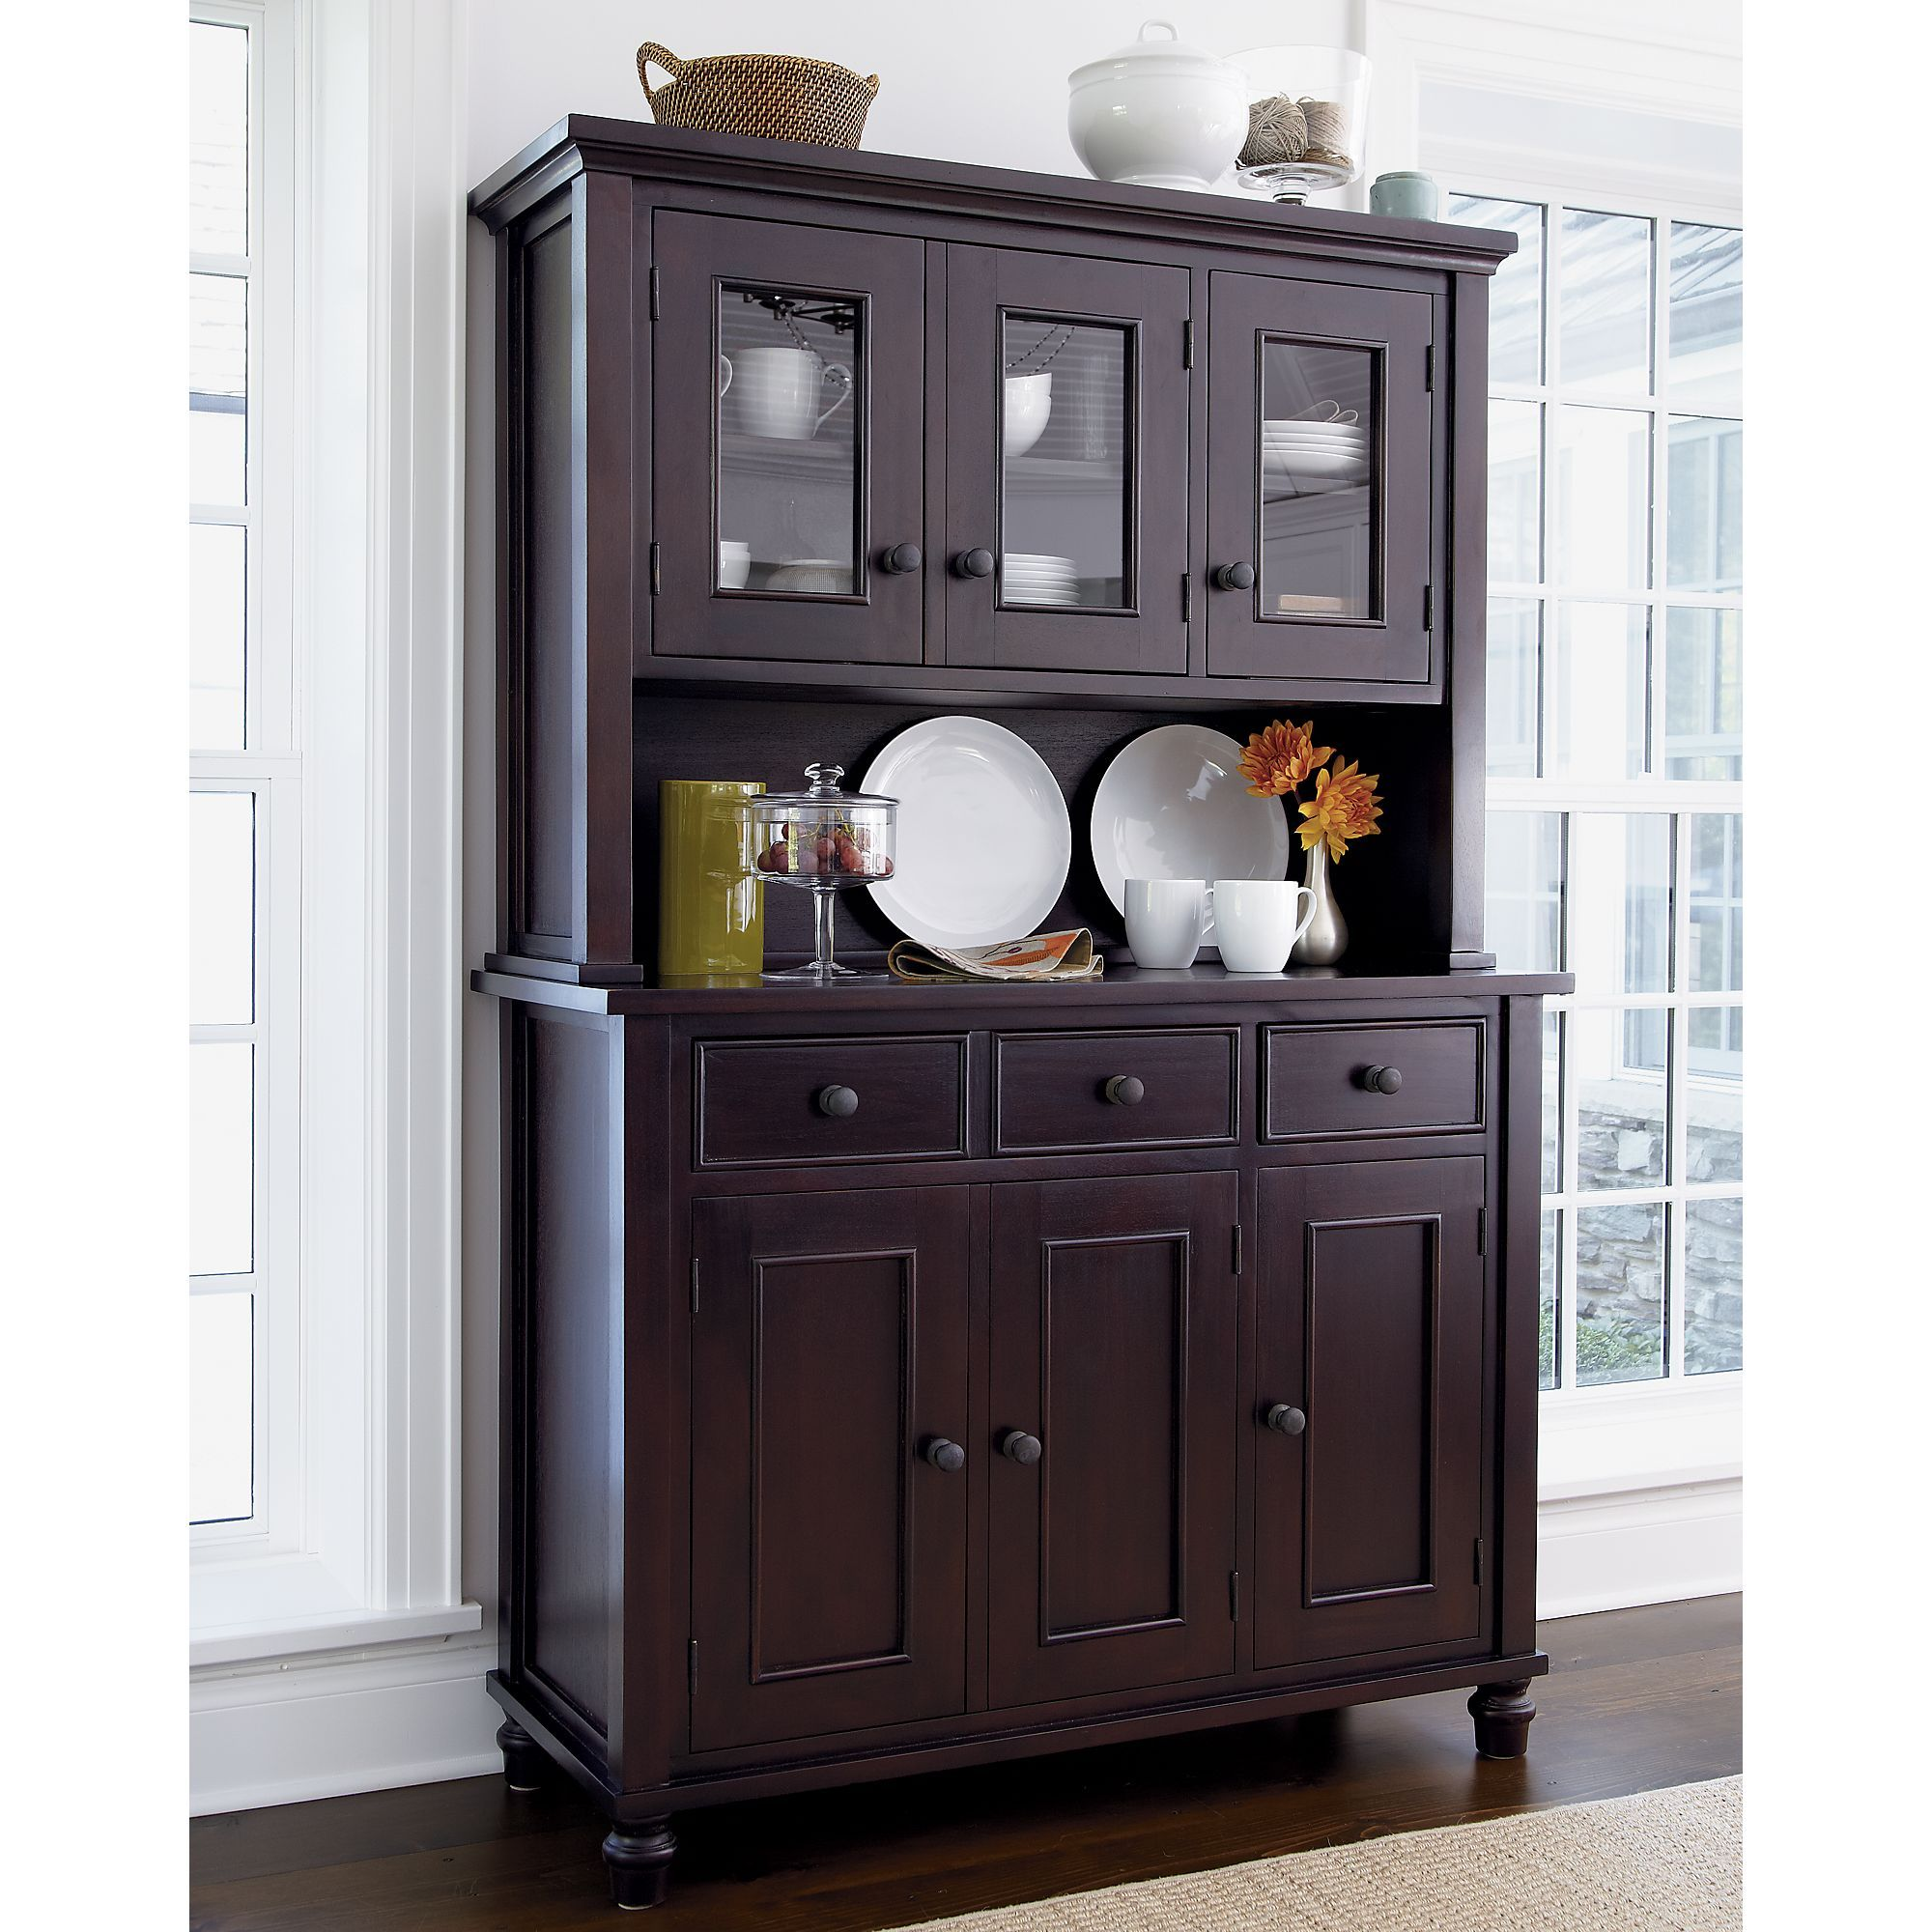 buffet hutch size cabinets of cabinet food to full storage floor sale ceiling ikea cheap with doors black kitchen for